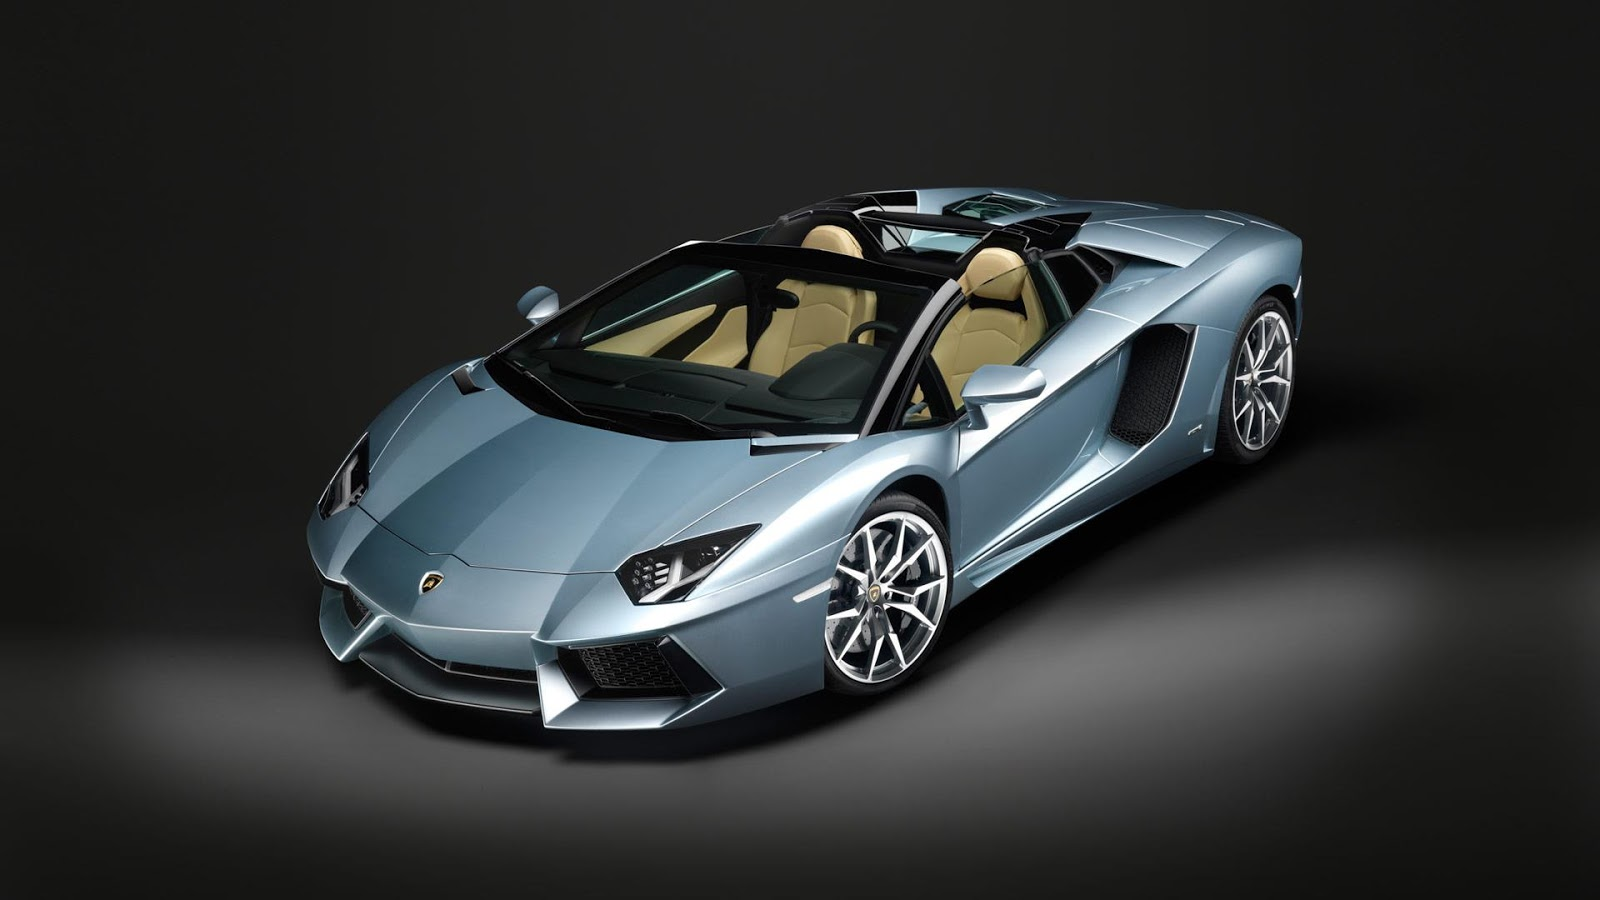 lamborghini aventador roadster crash automotive car. Black Bedroom Furniture Sets. Home Design Ideas